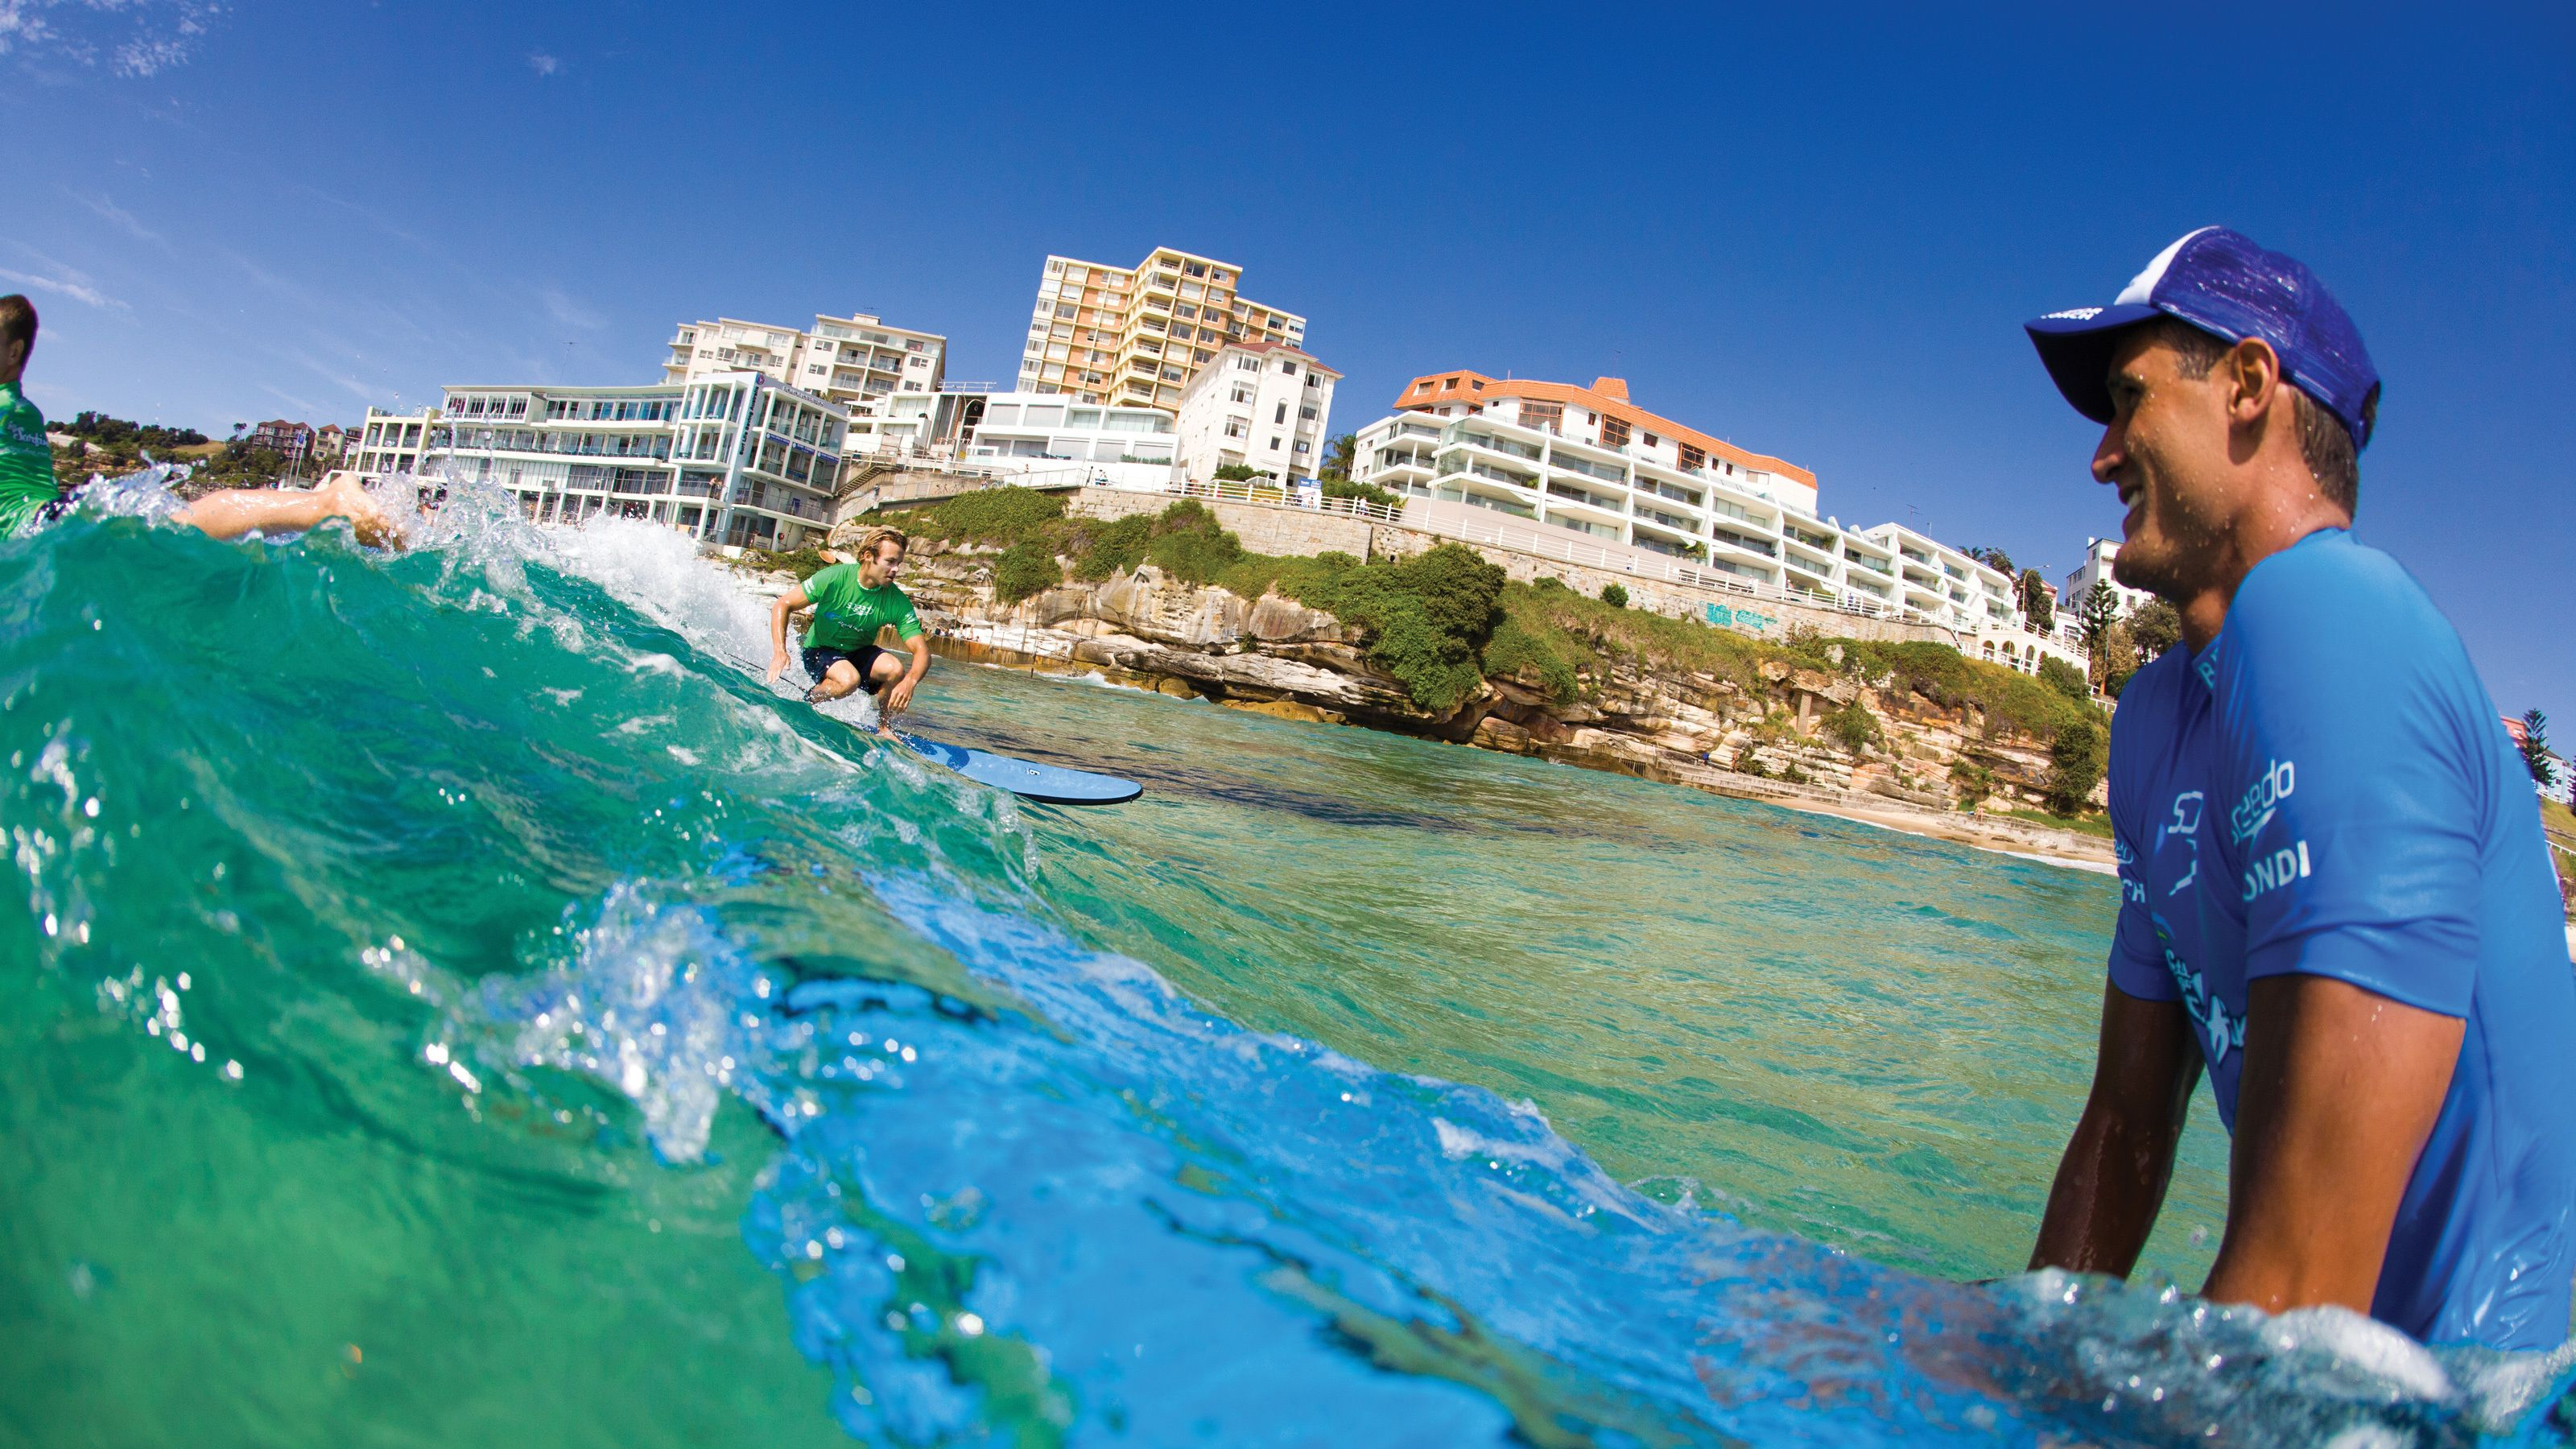 Surf instructor in the waters of Bondi Beach smiling as he watches out for those surfing